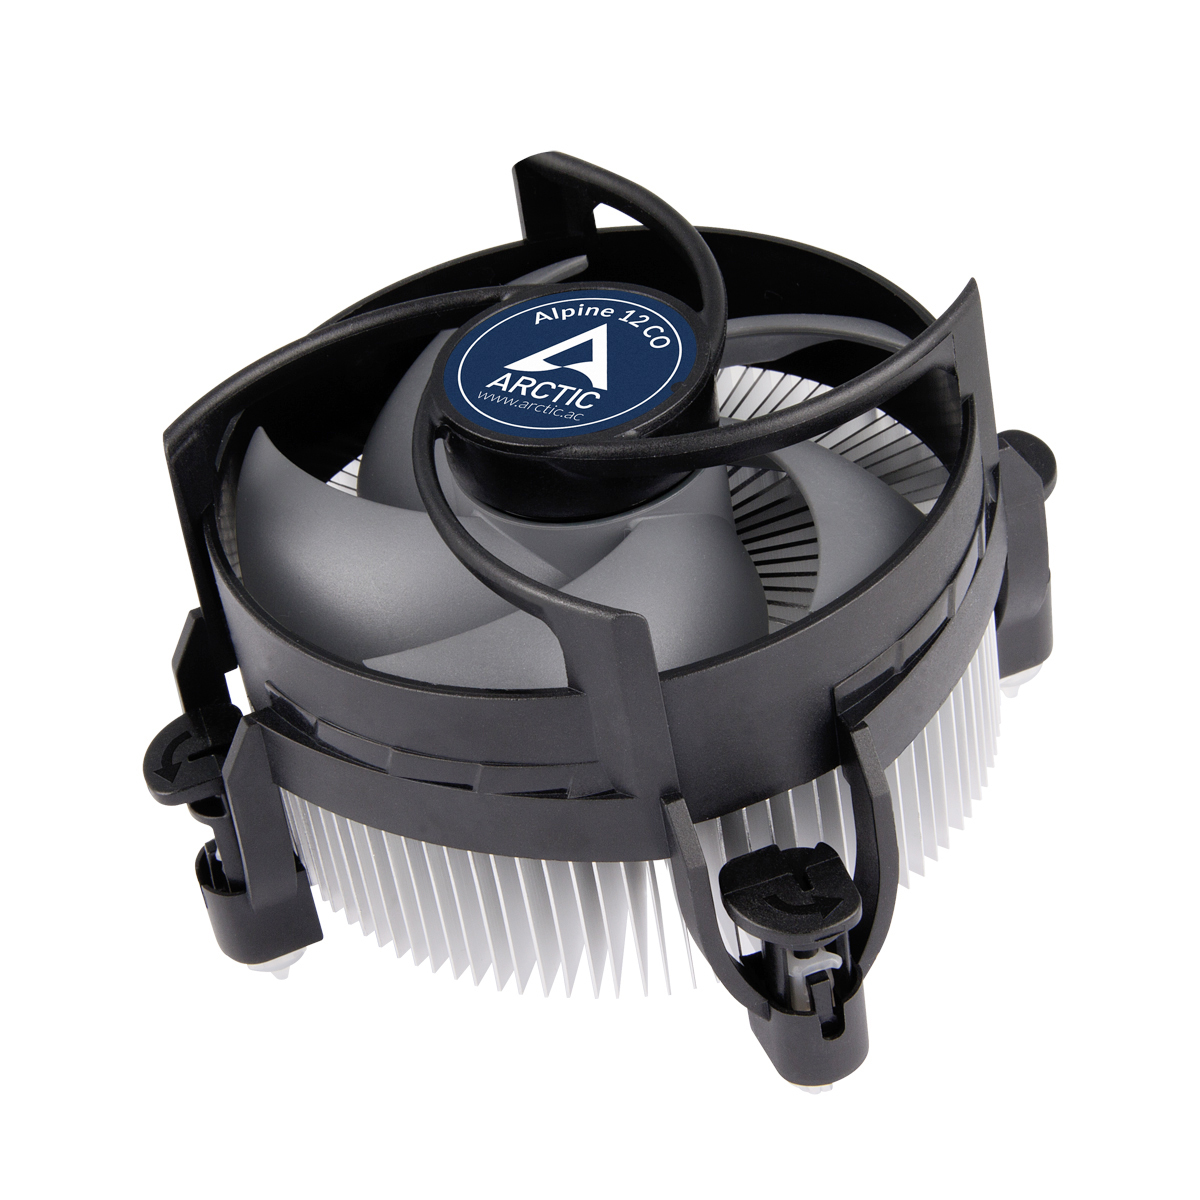 ACALP00031A ARCTIC Alpine 12 CO Processor Heatsink - Ent01